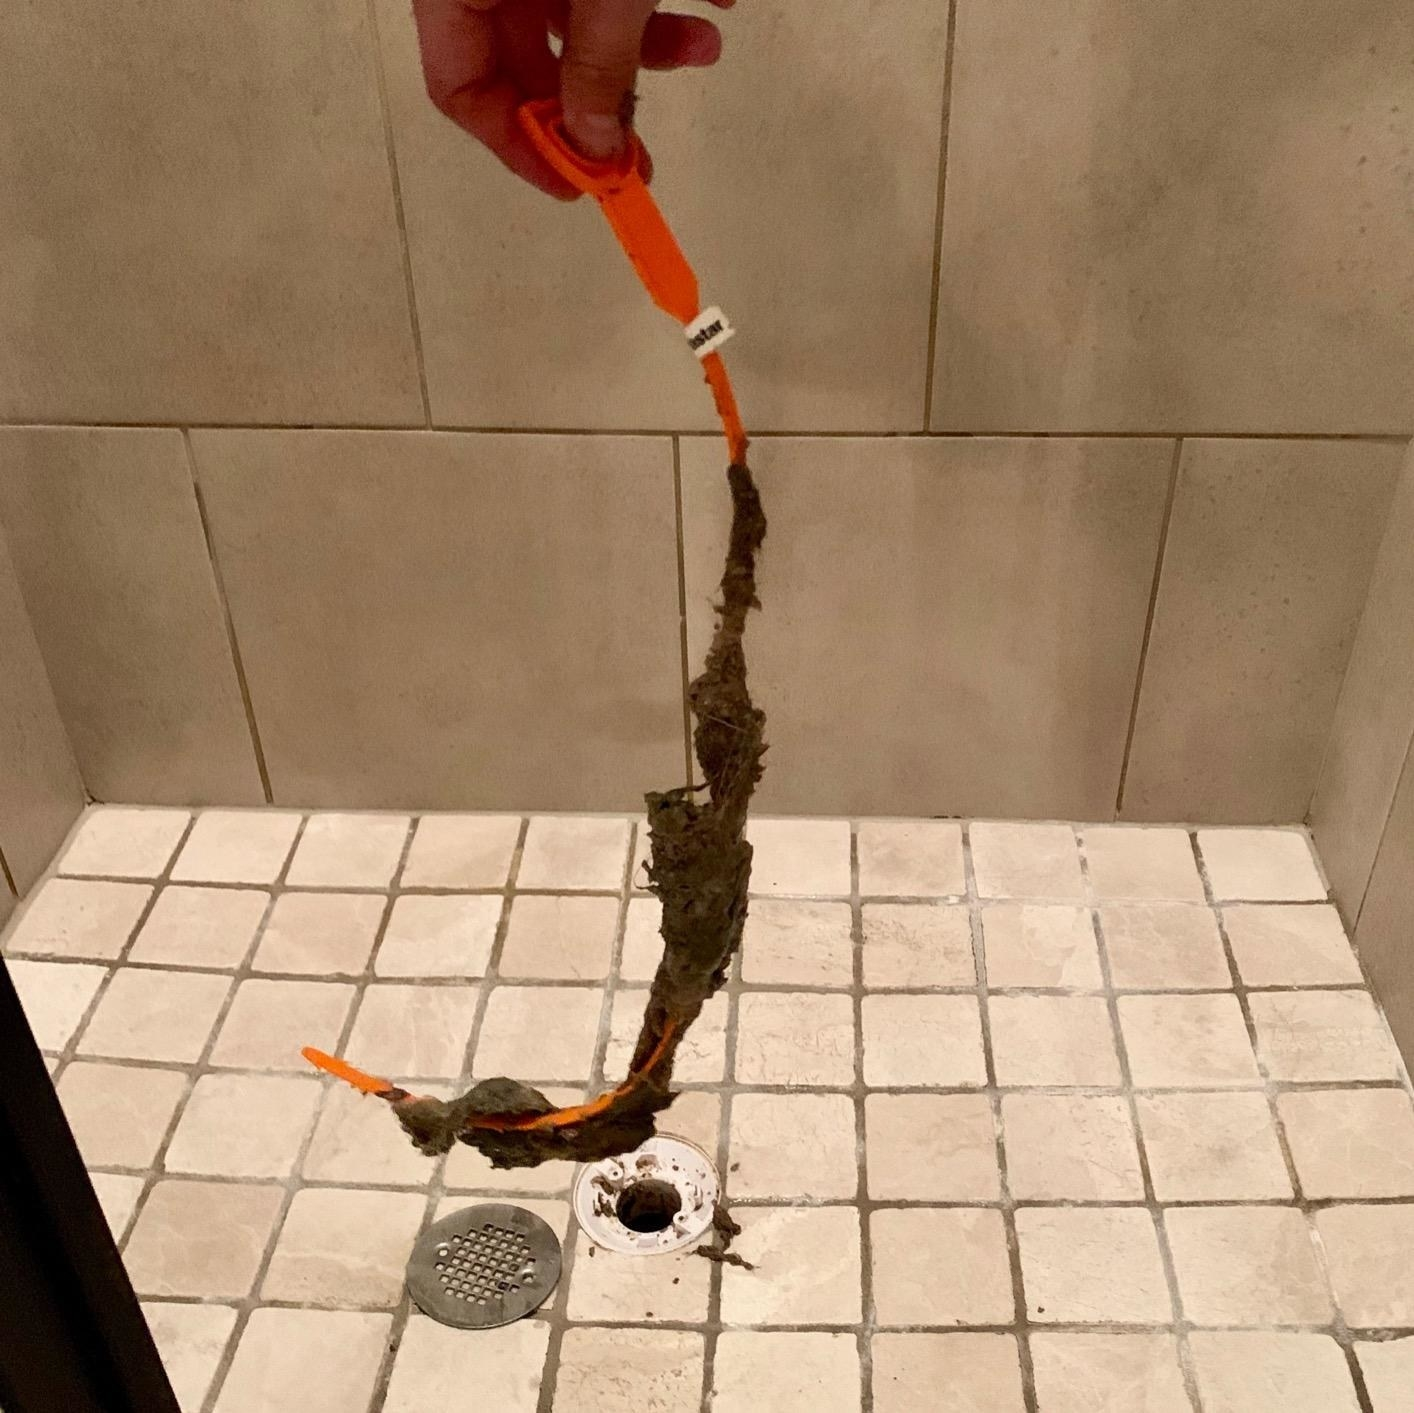 A reviewer showing the drain snake covered in gunk from their drain